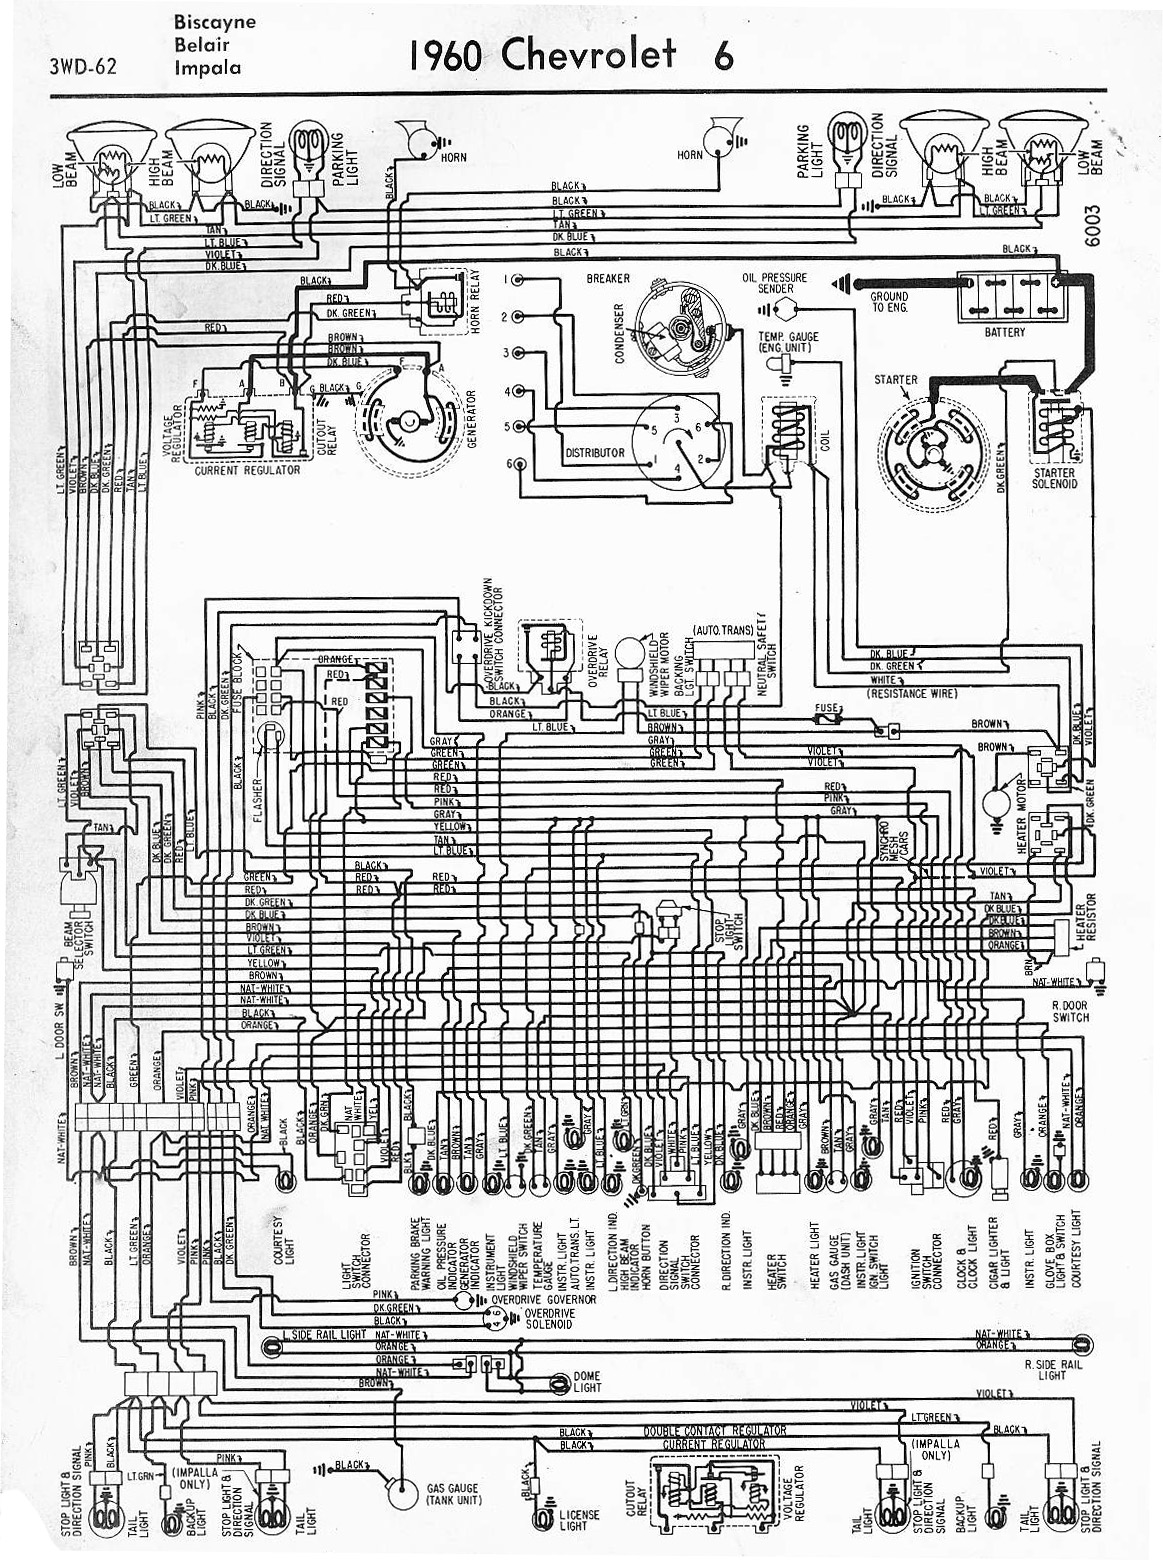 1968 mustang tach wiring diagram wiring diagrams 59 60  64 88 el camino central forum  wiring diagrams 59 60  64 88 el